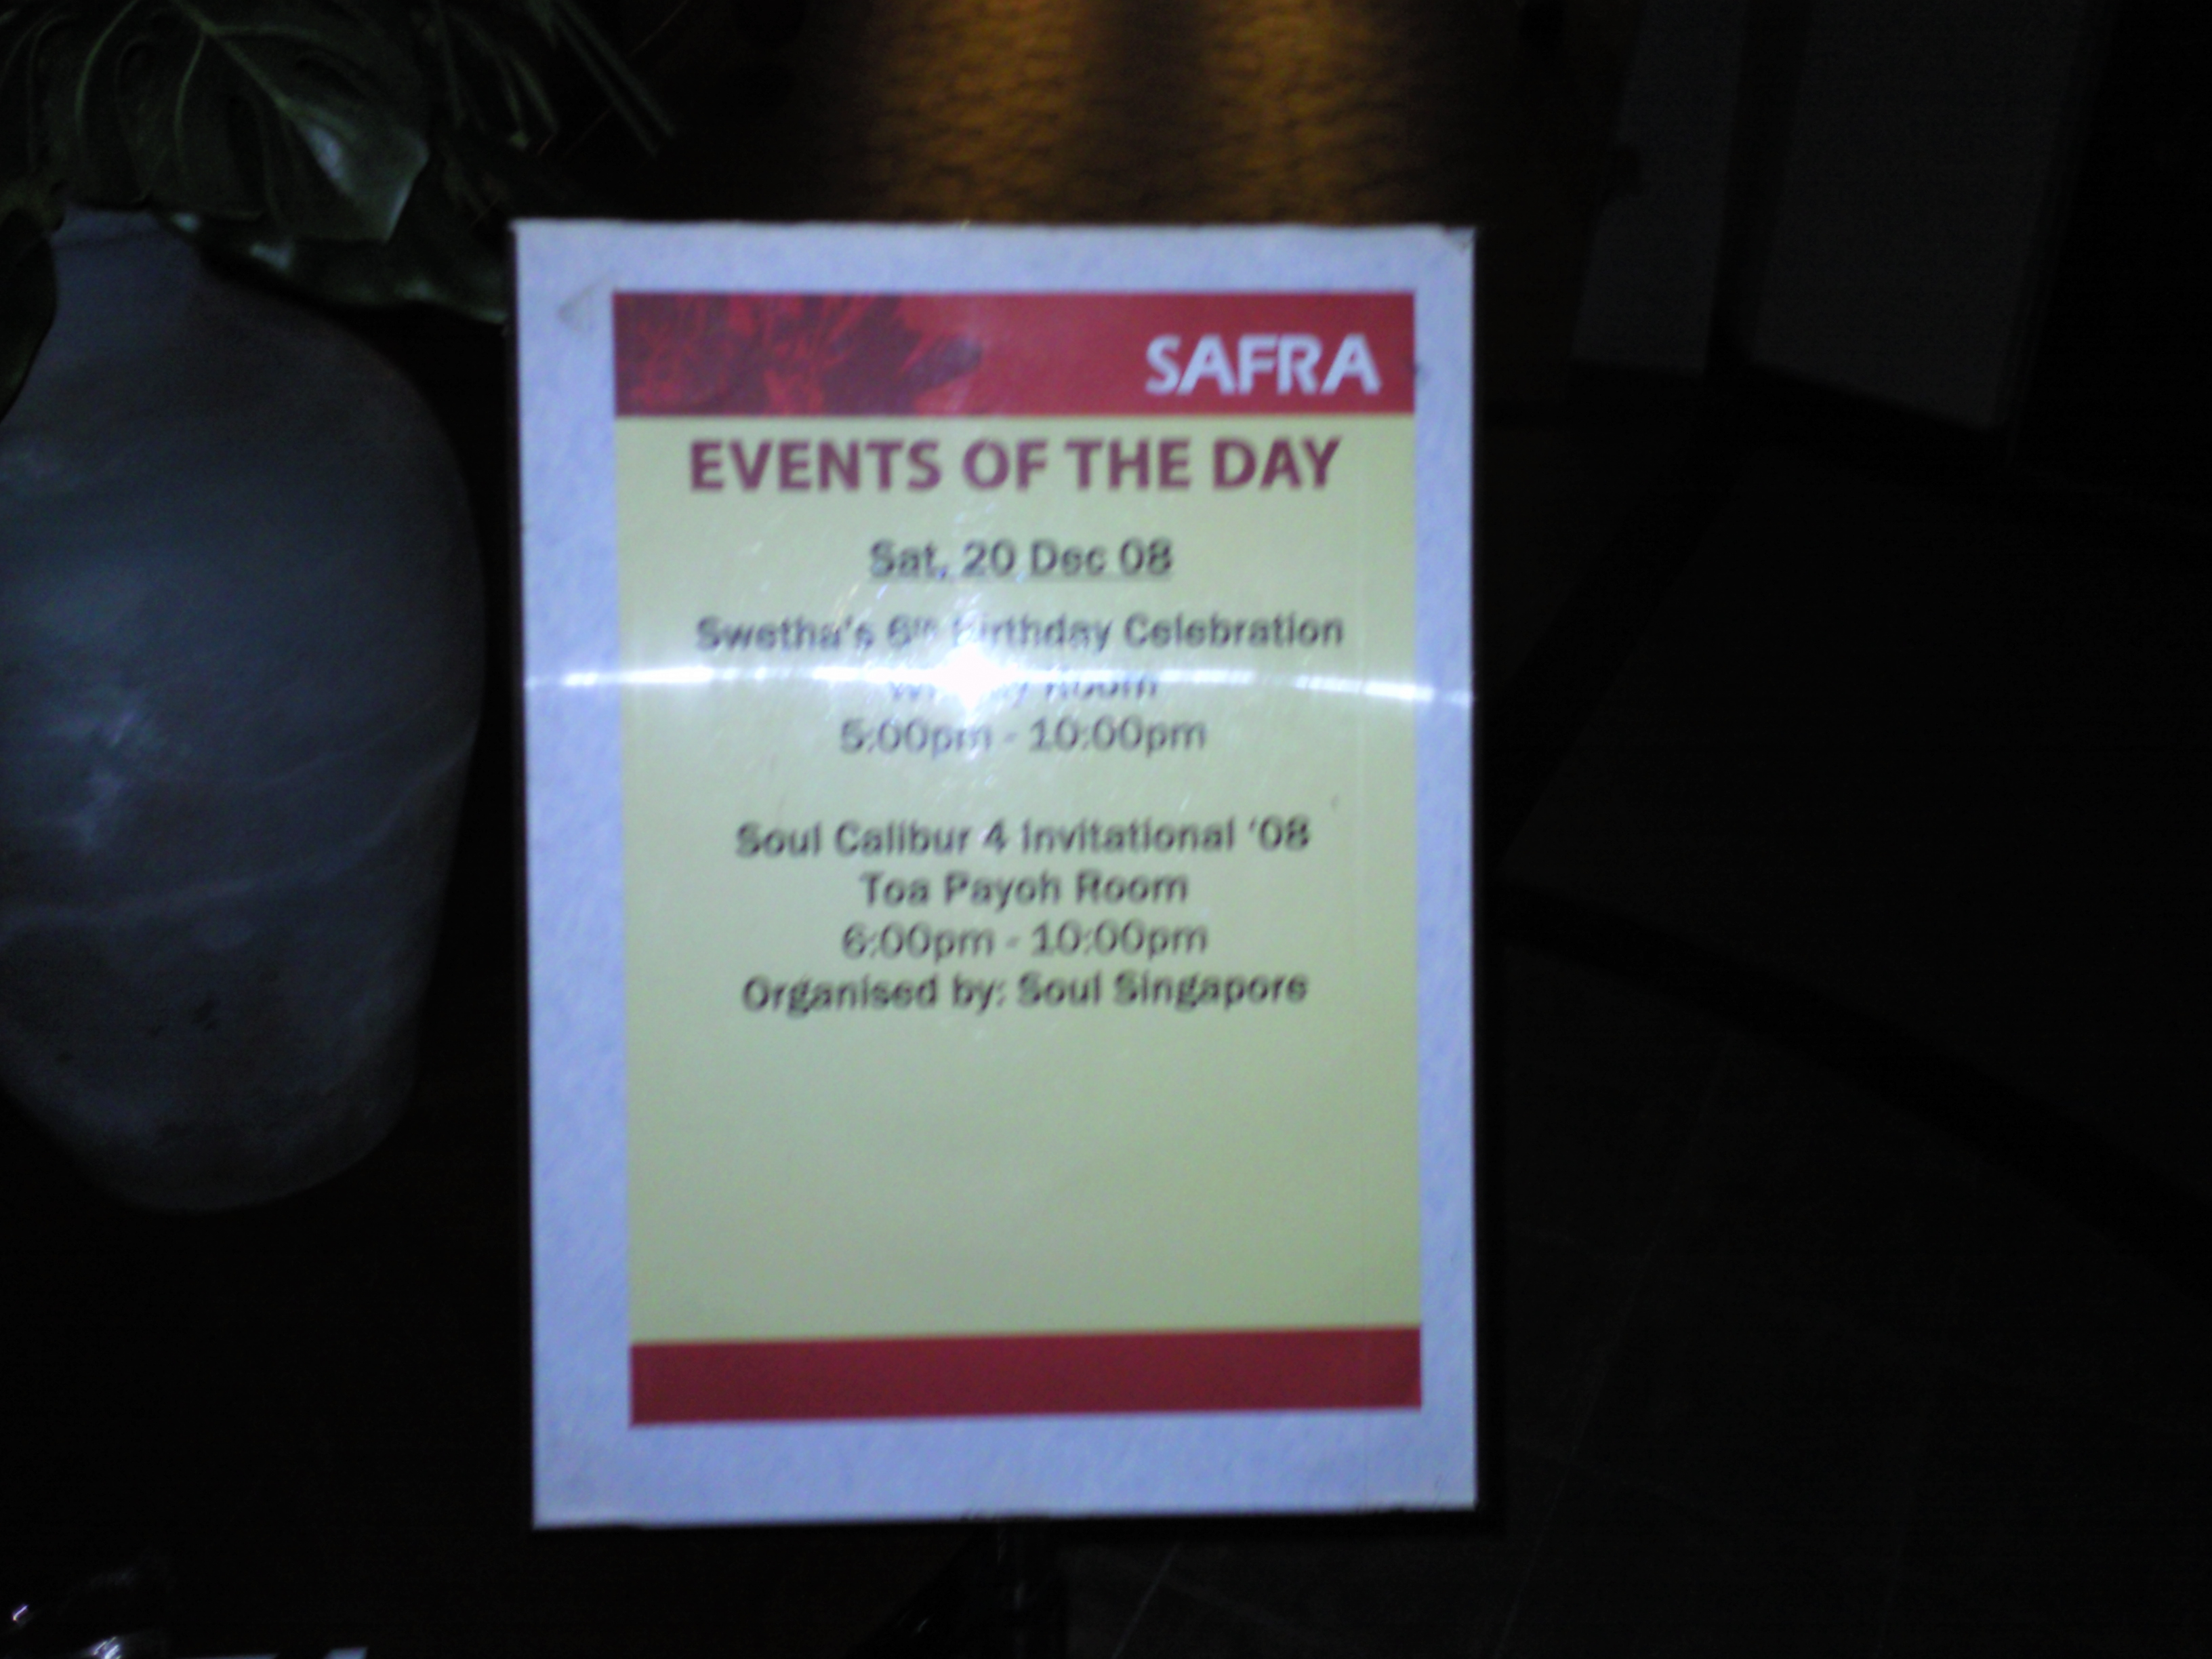 Events signage @ SAFRA Toa Payoh